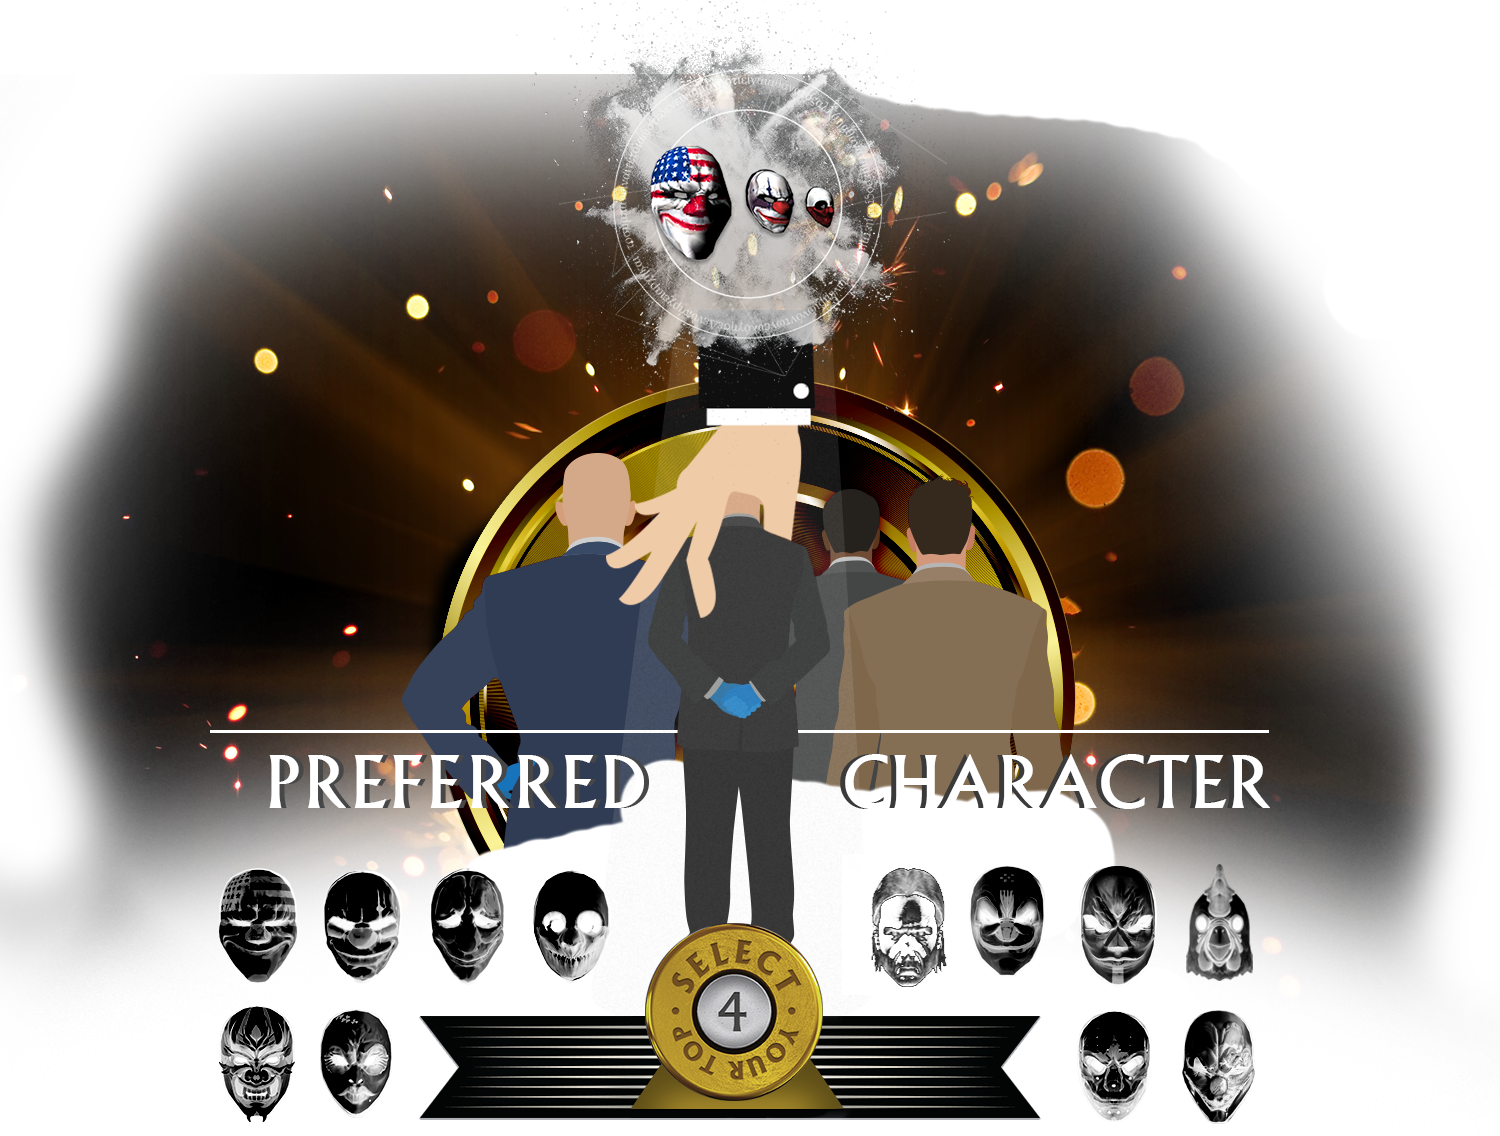 Preferred Character